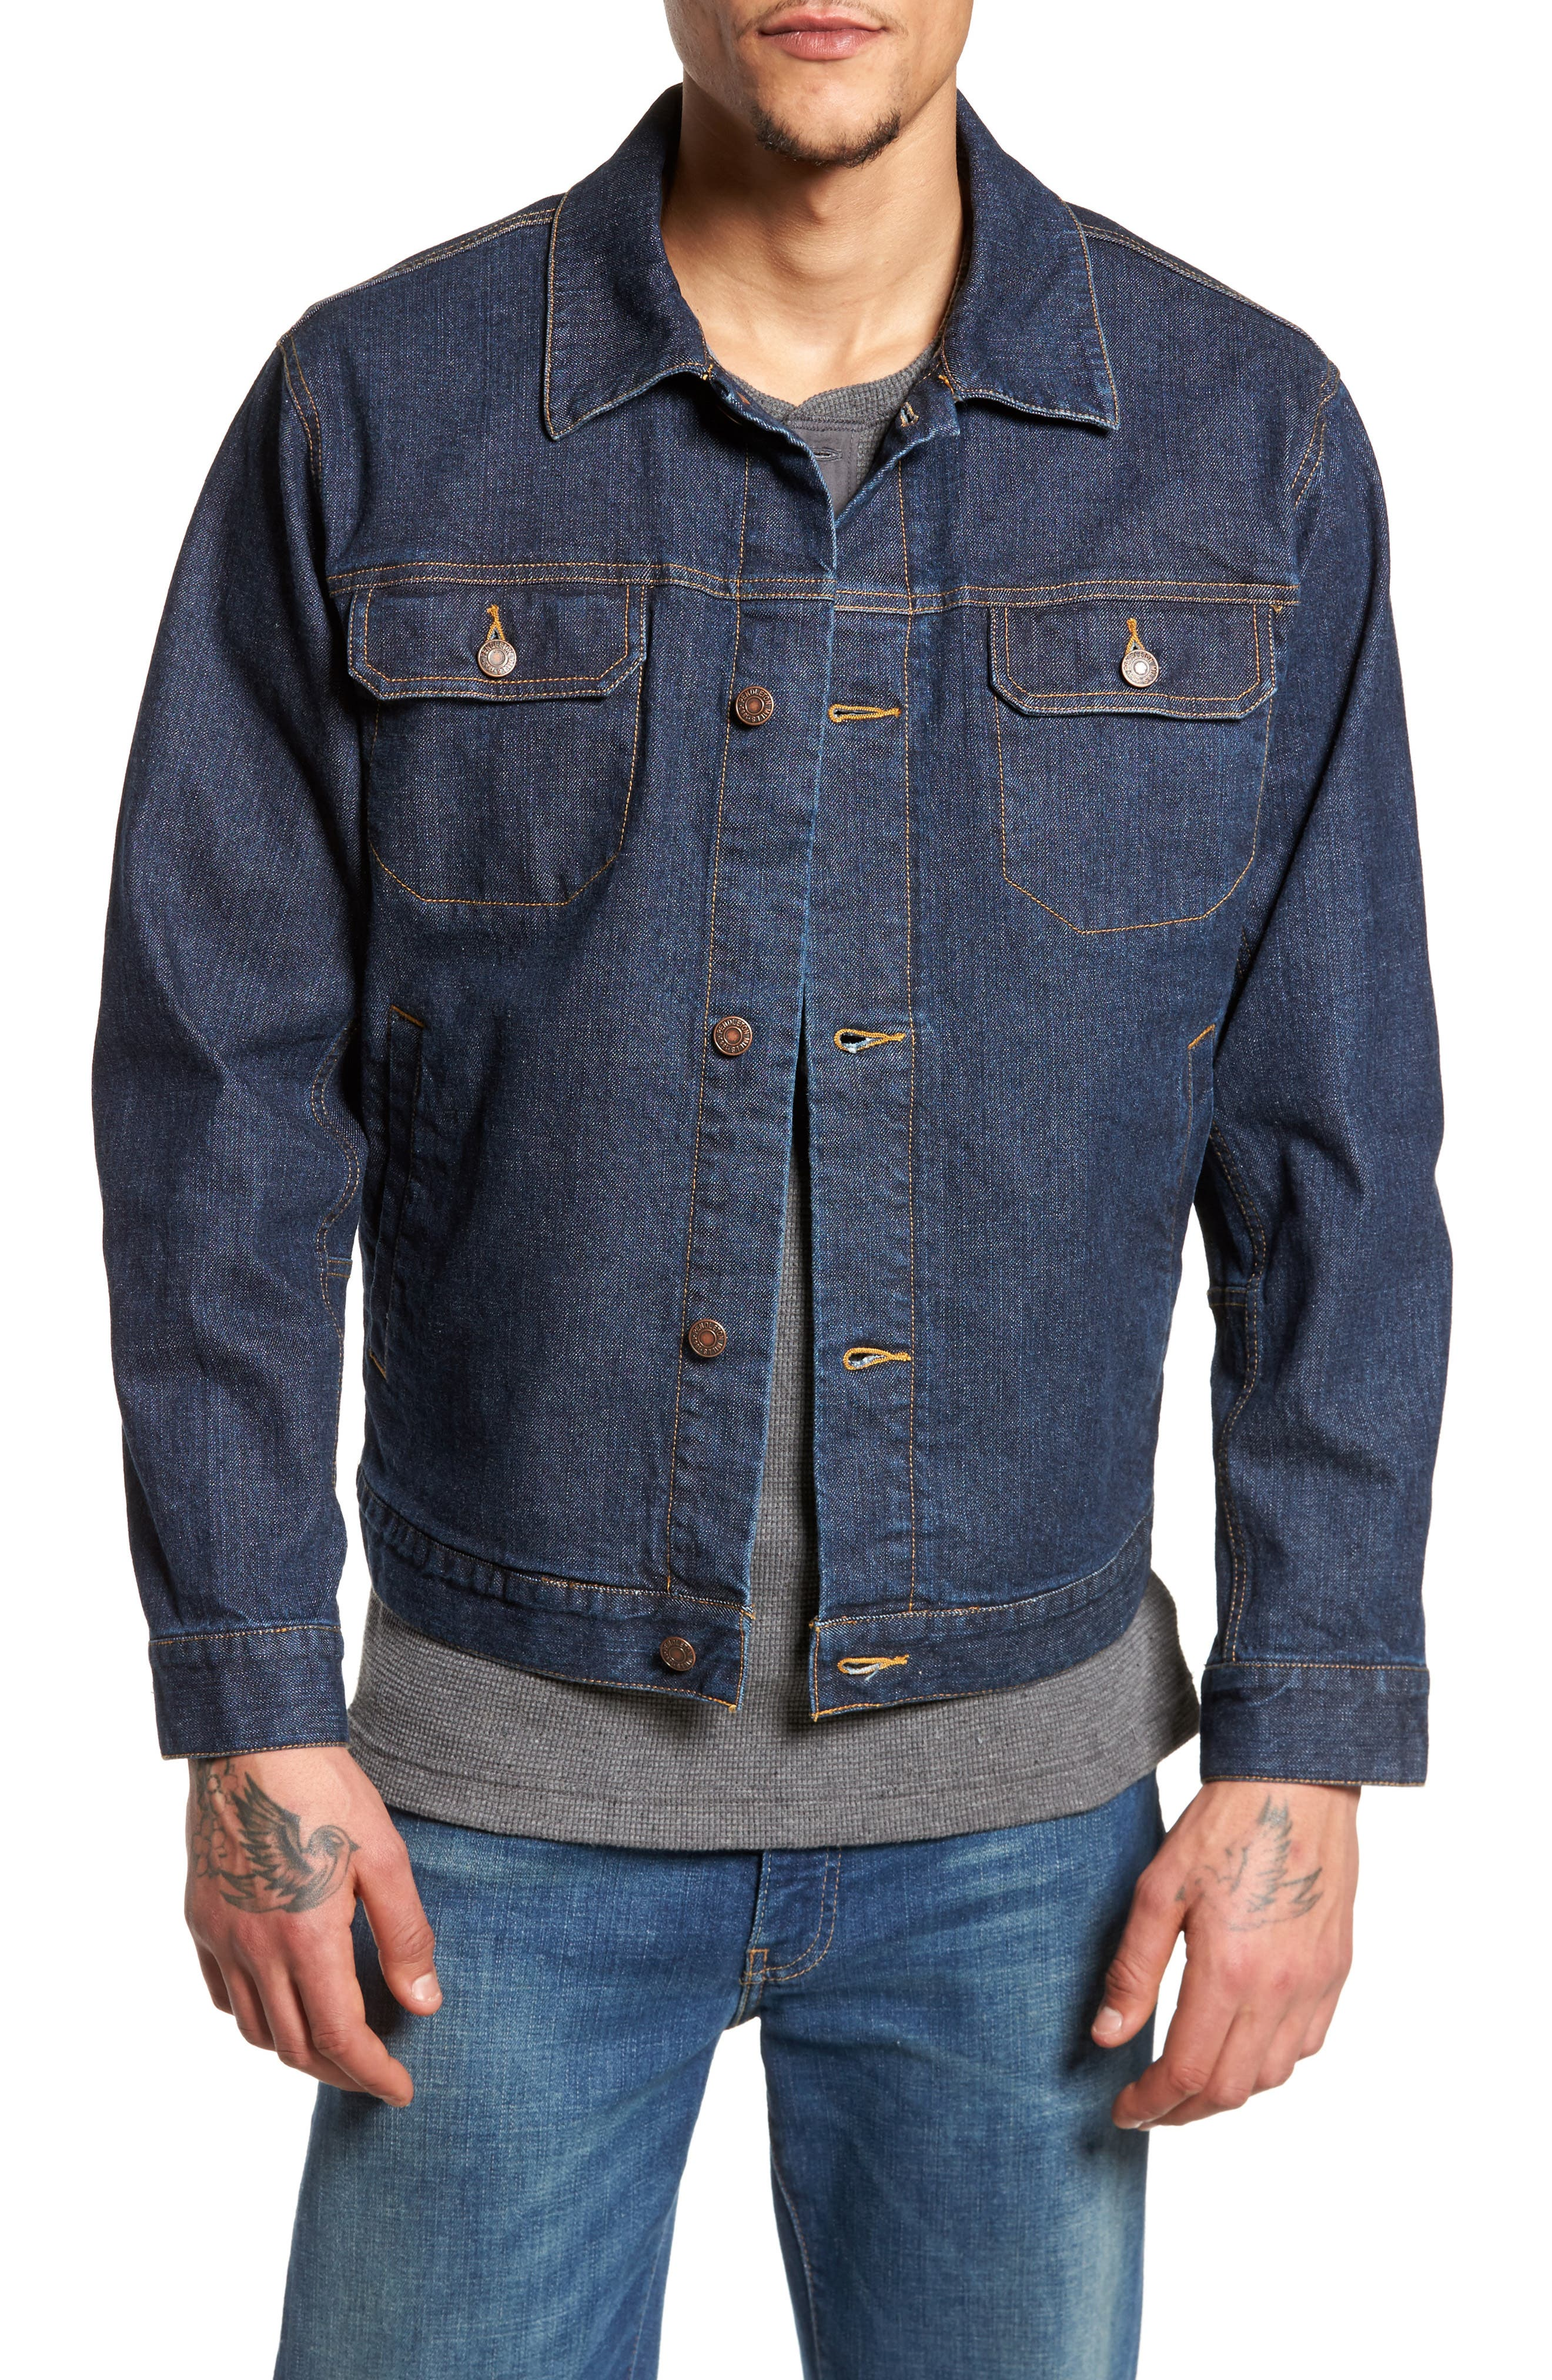 Denim Jacket with Removable Wool Vest,                             Main thumbnail 1, color,                             415